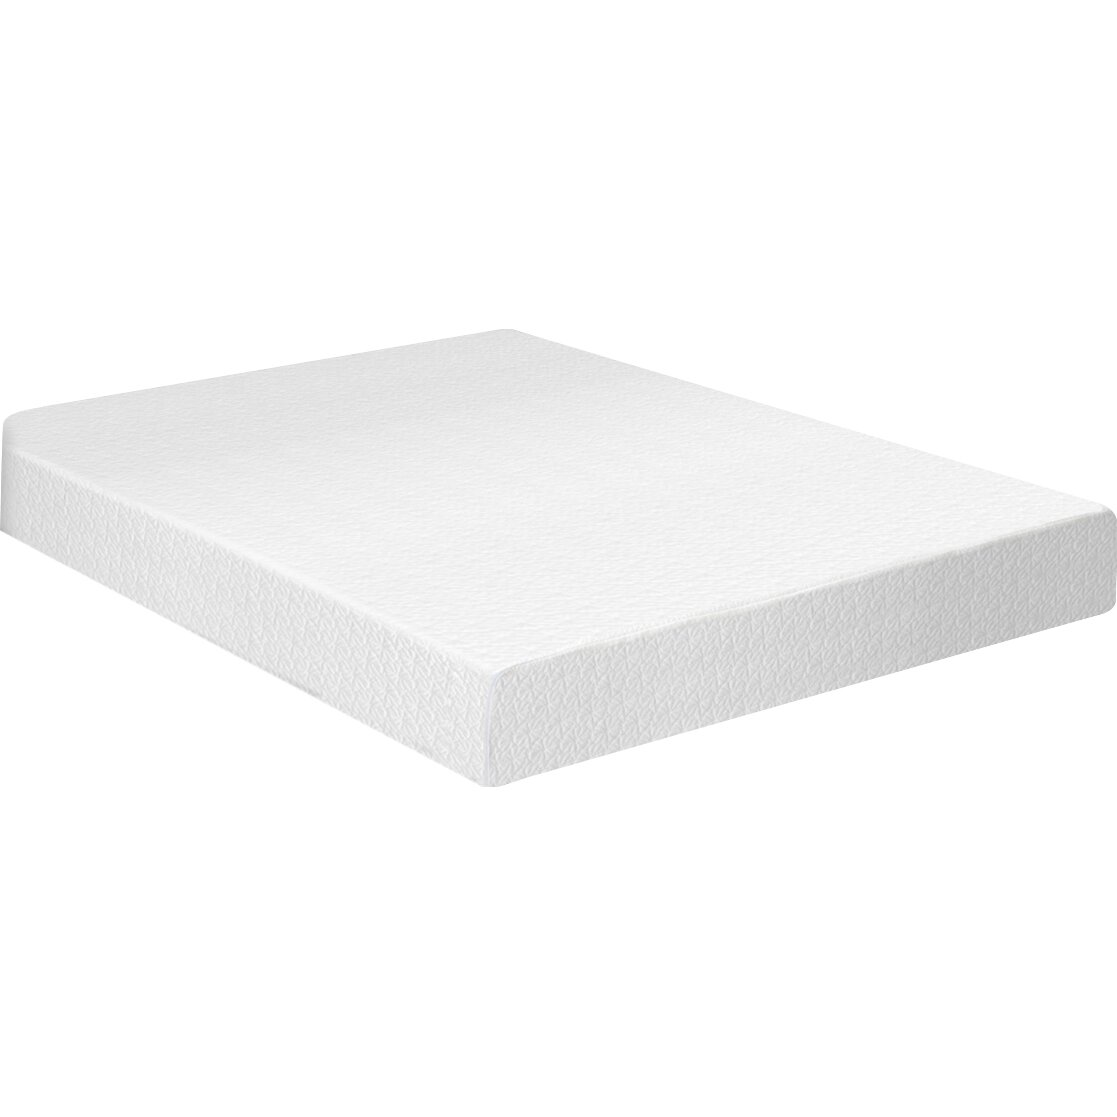 Best Price Quality Best Price Quality 8 Memory Foam Mattress Reviews Wayfair